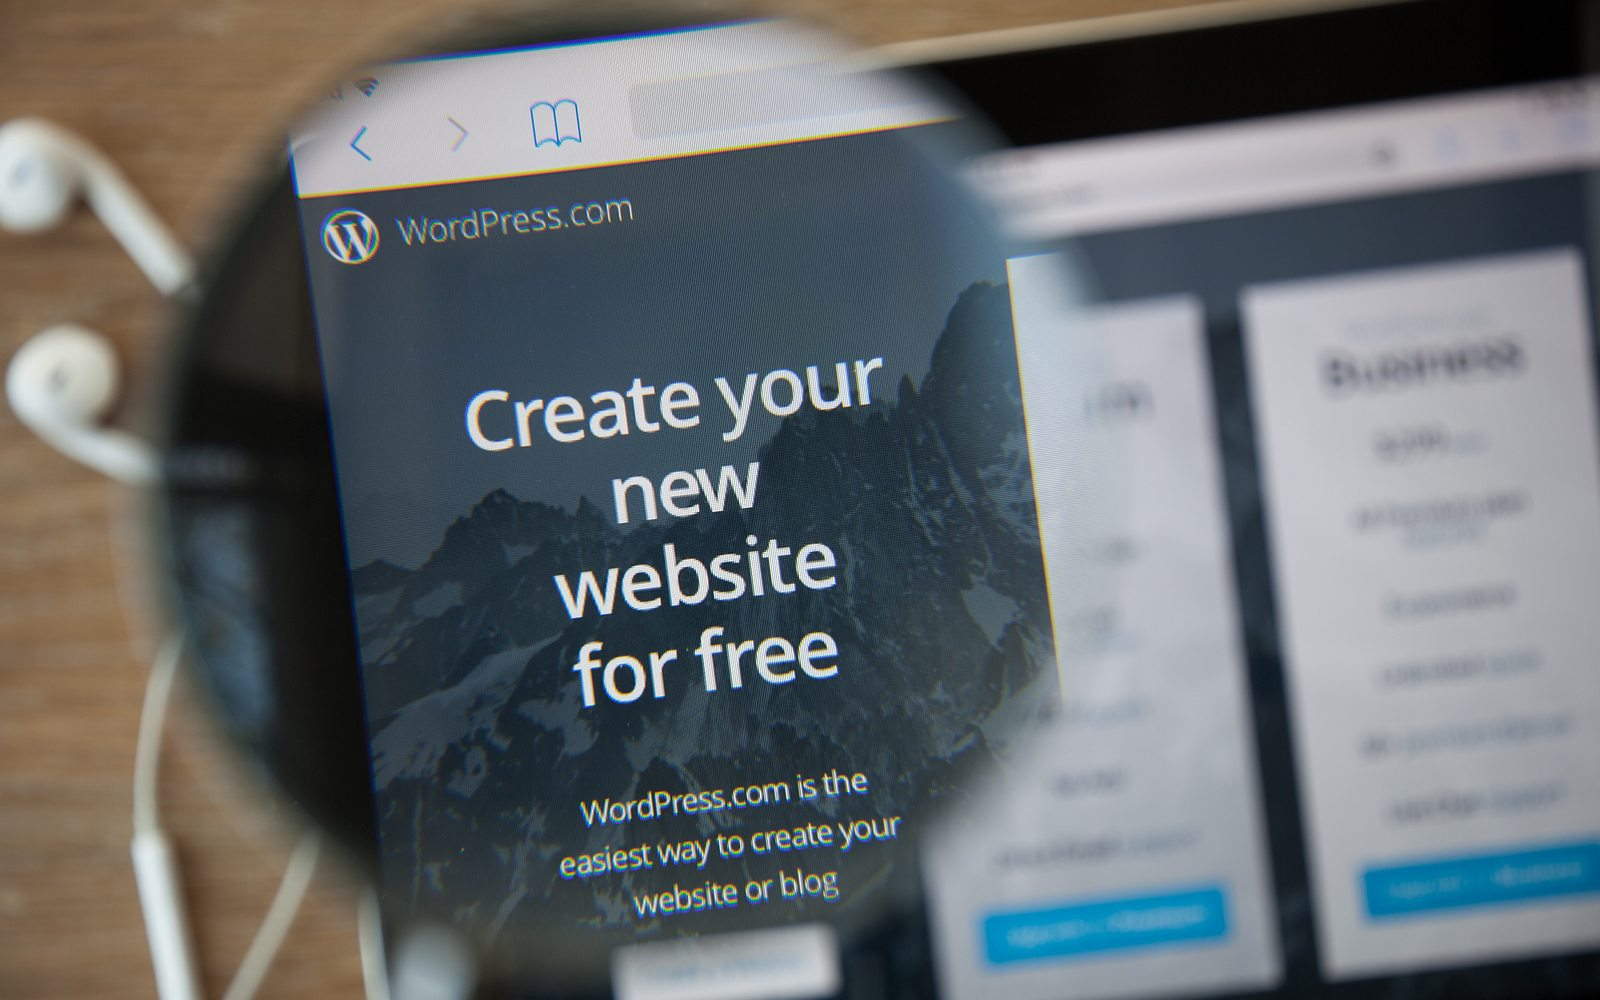 create-your-new-website-for-free